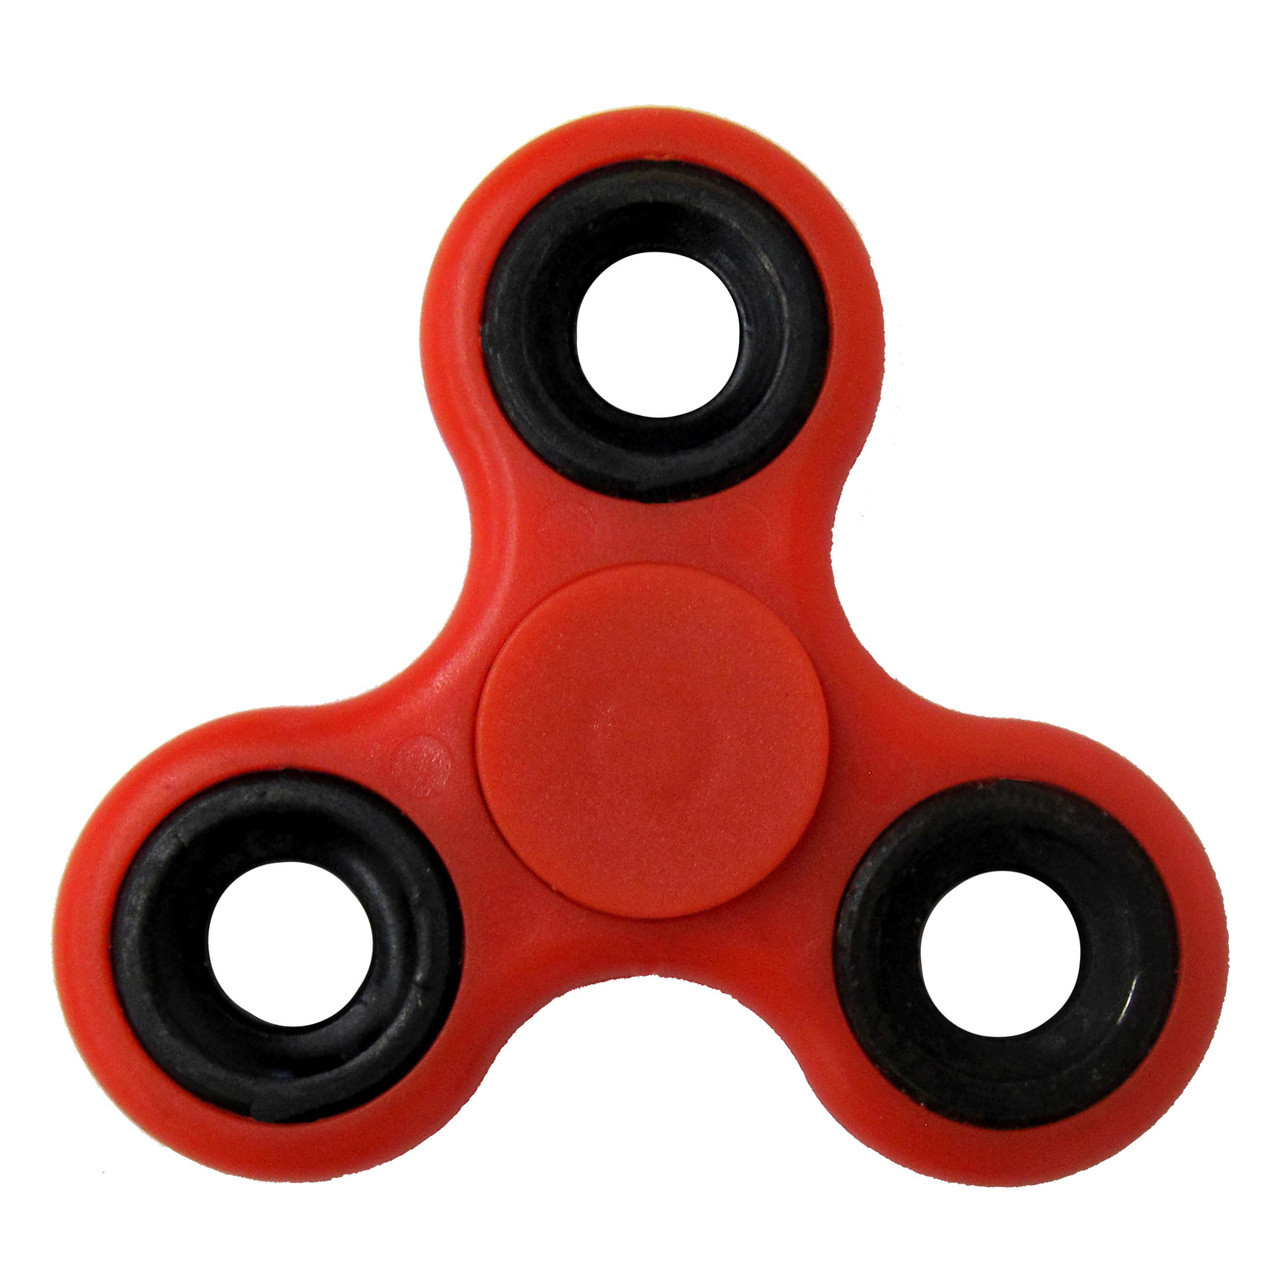 Red Fidget Spinners!